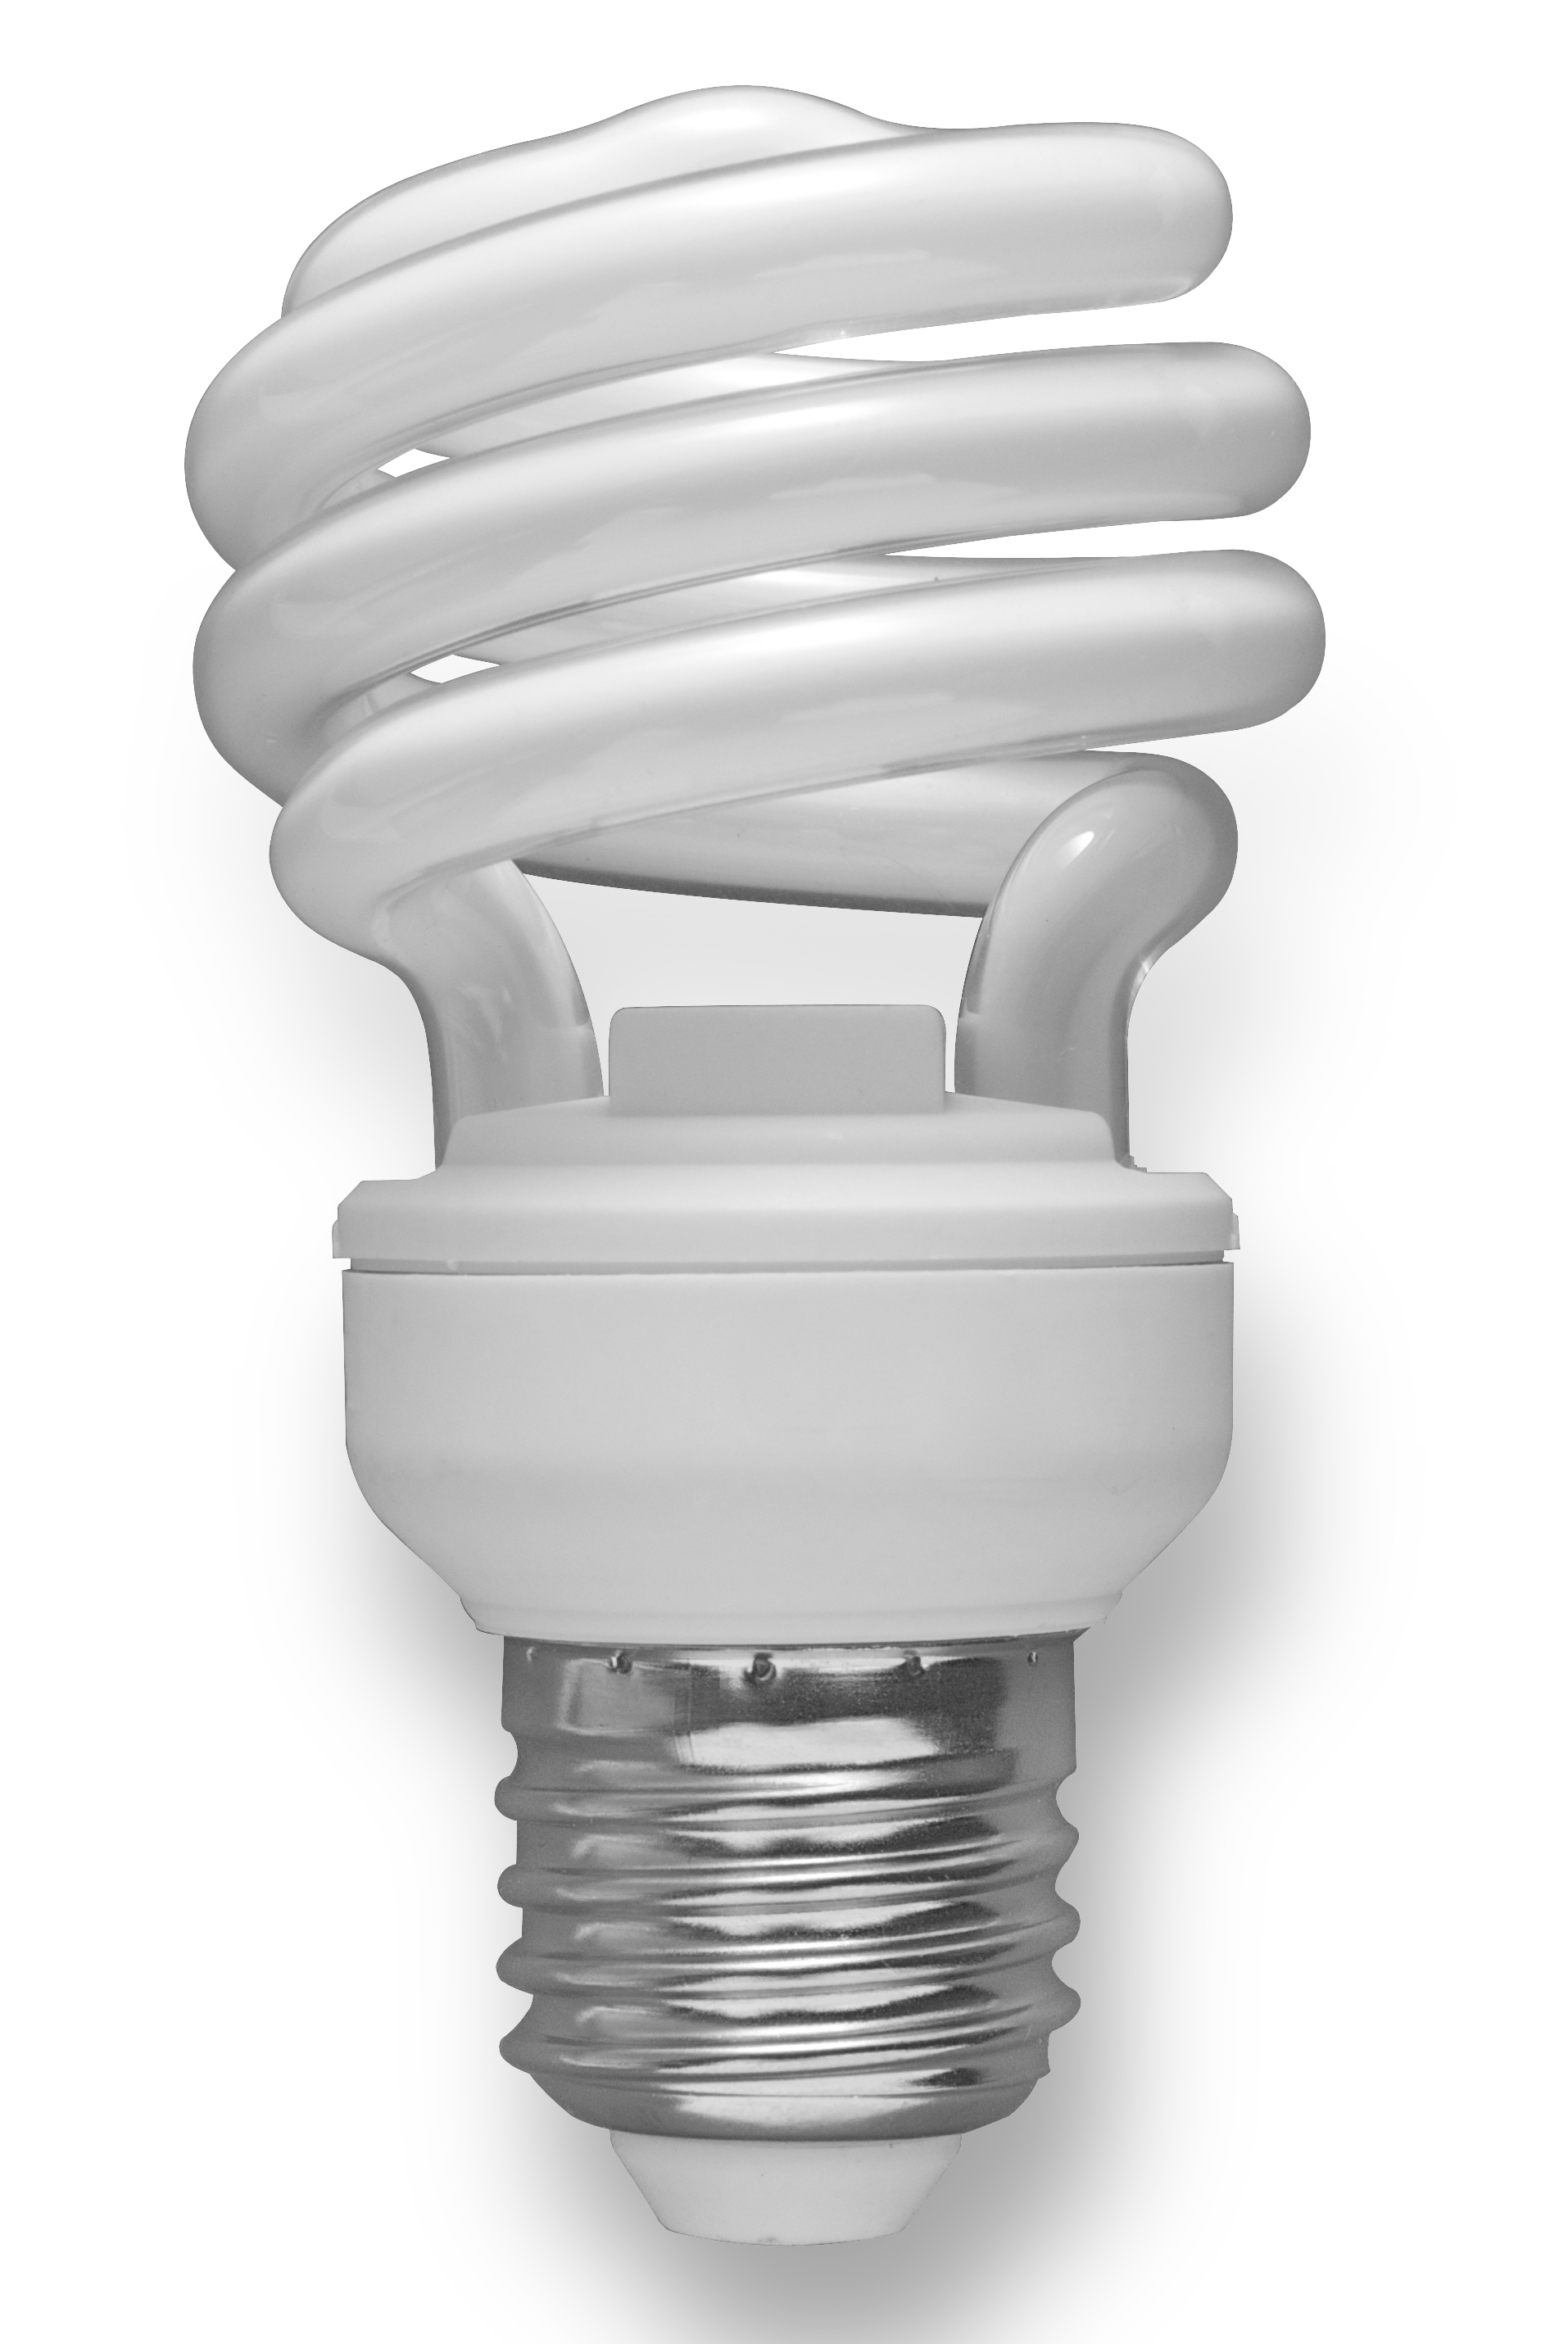 Cfl Bulbs Time To Switch Those Light Bulbs It 39s Easy Being Green